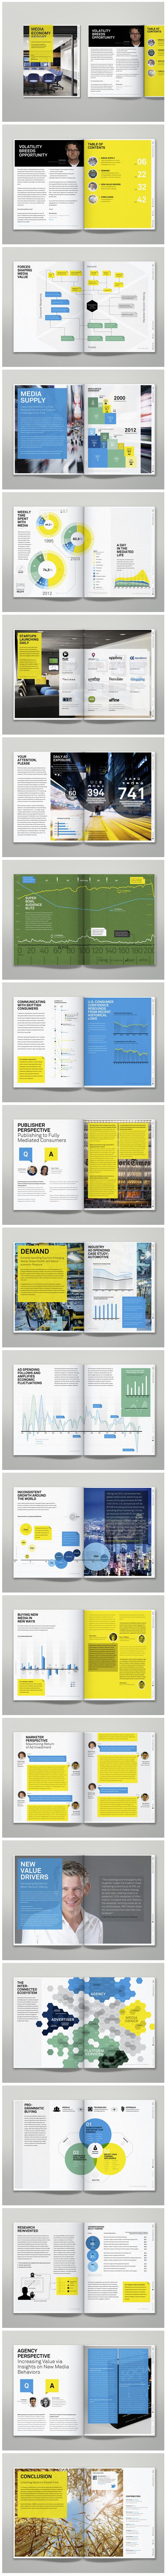 IPG Media Economy Report via Behance. Brochure. Capability Statement. Annual report inspiration.